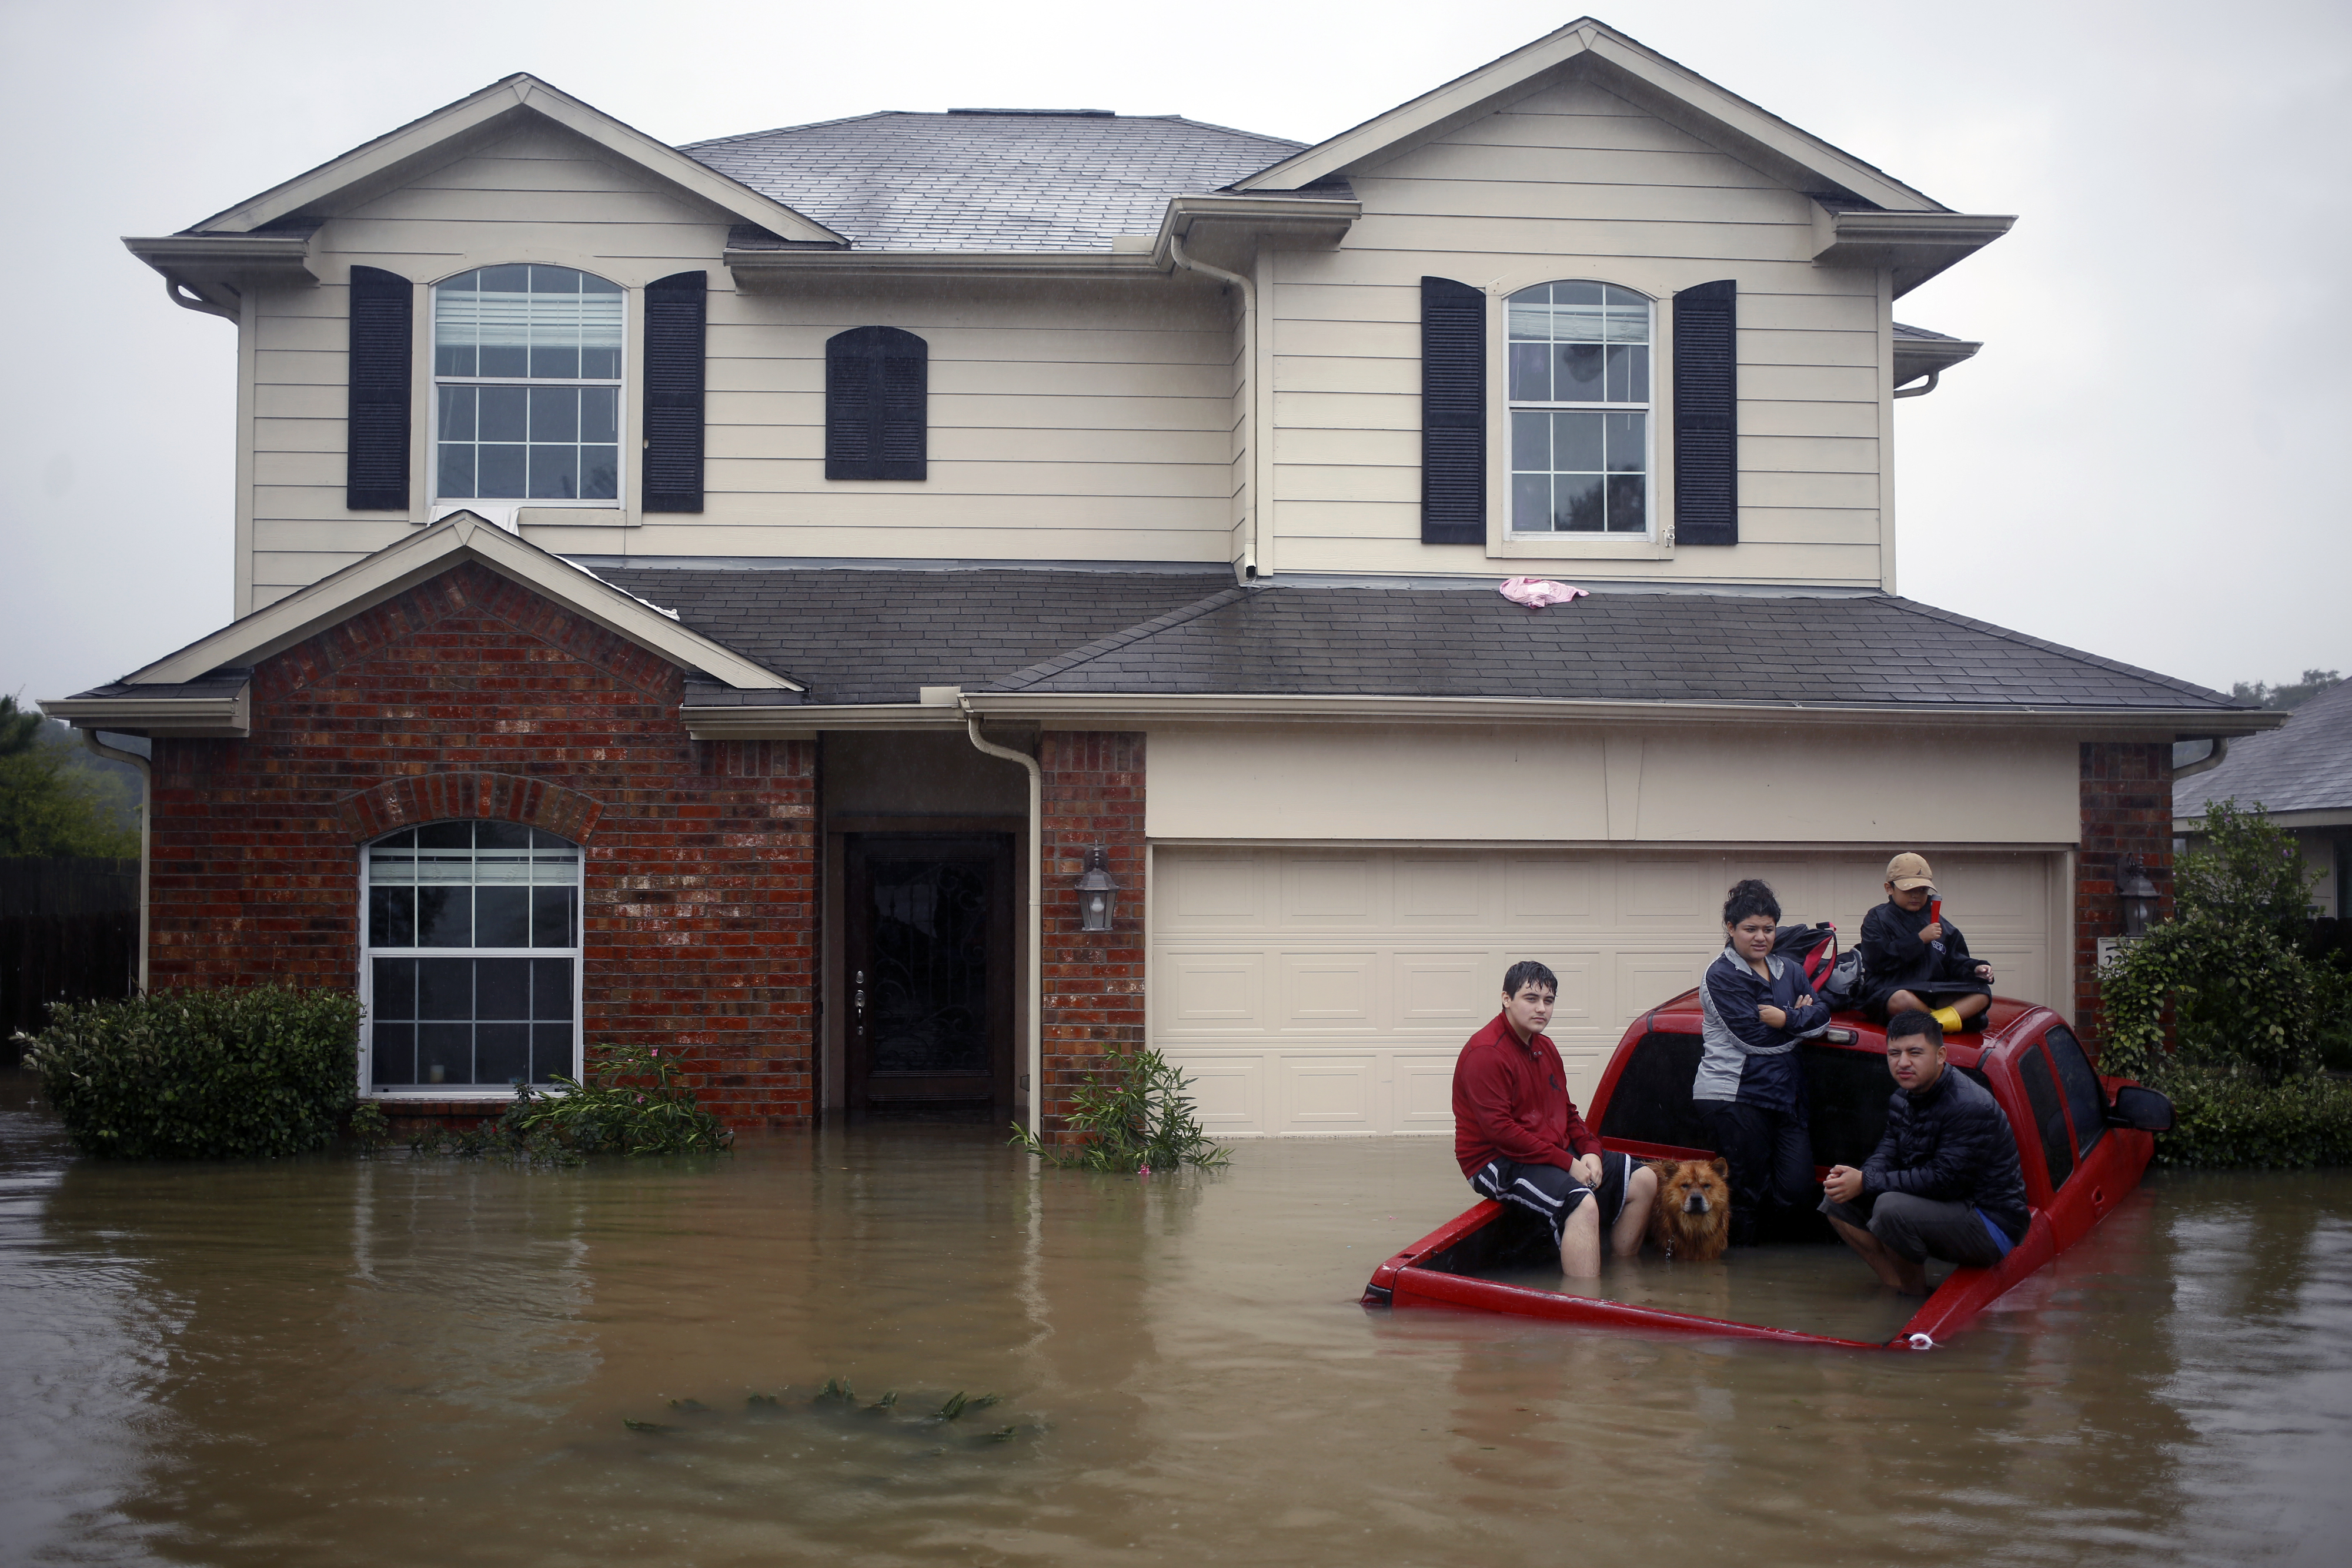 Flooding As HarveyPlunges Houston's Thriving Economy Into Years-Long Crisis